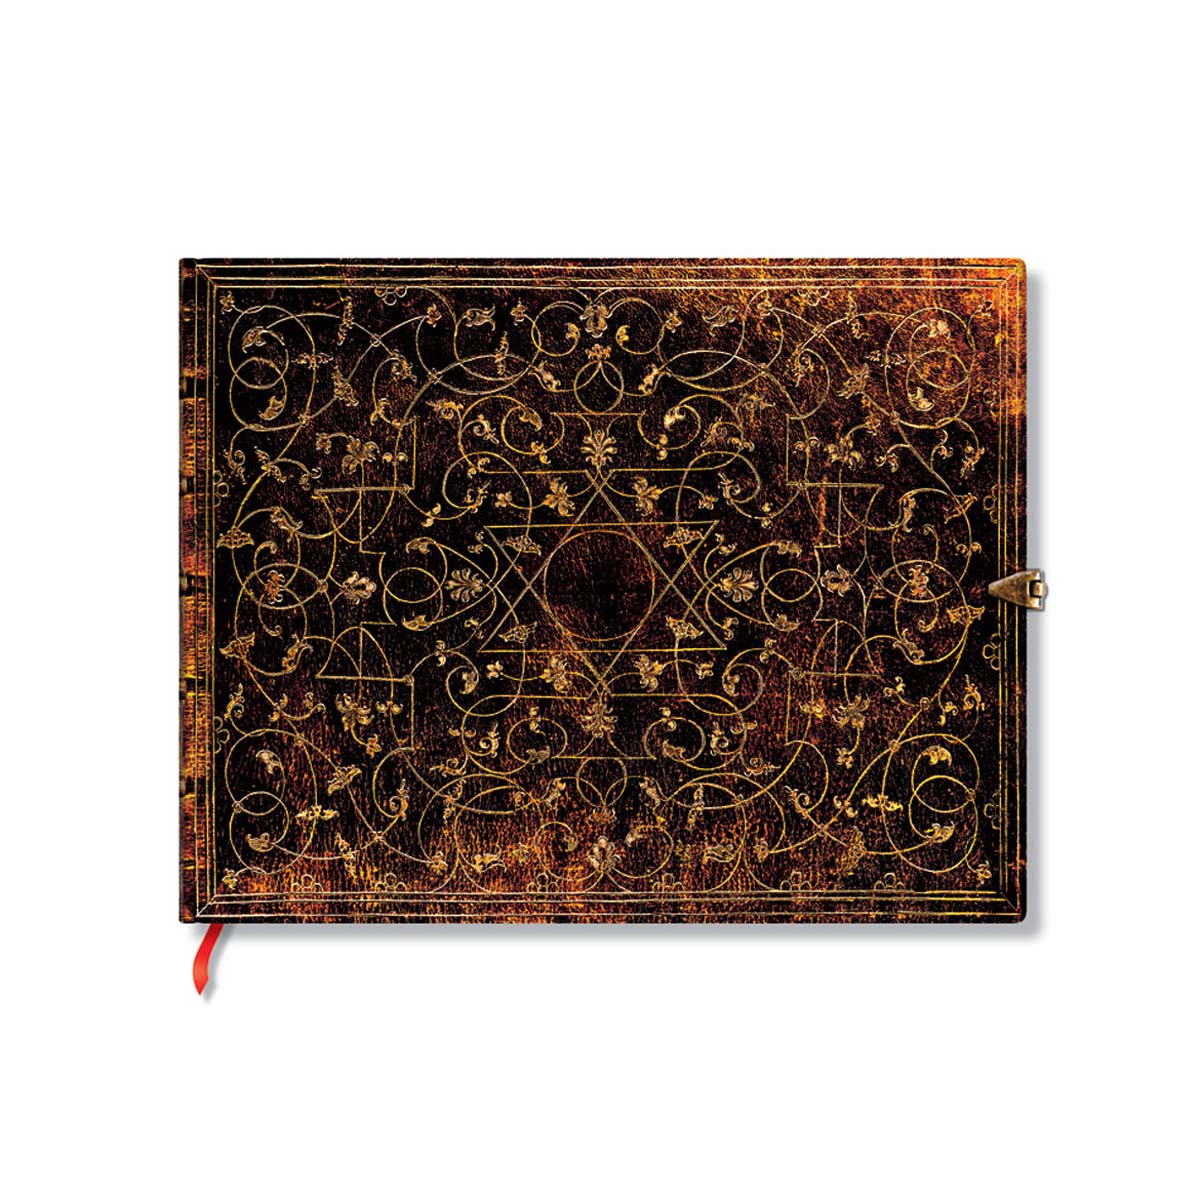 Paperblanks Grolier 9 x 7 Inch Guest Book